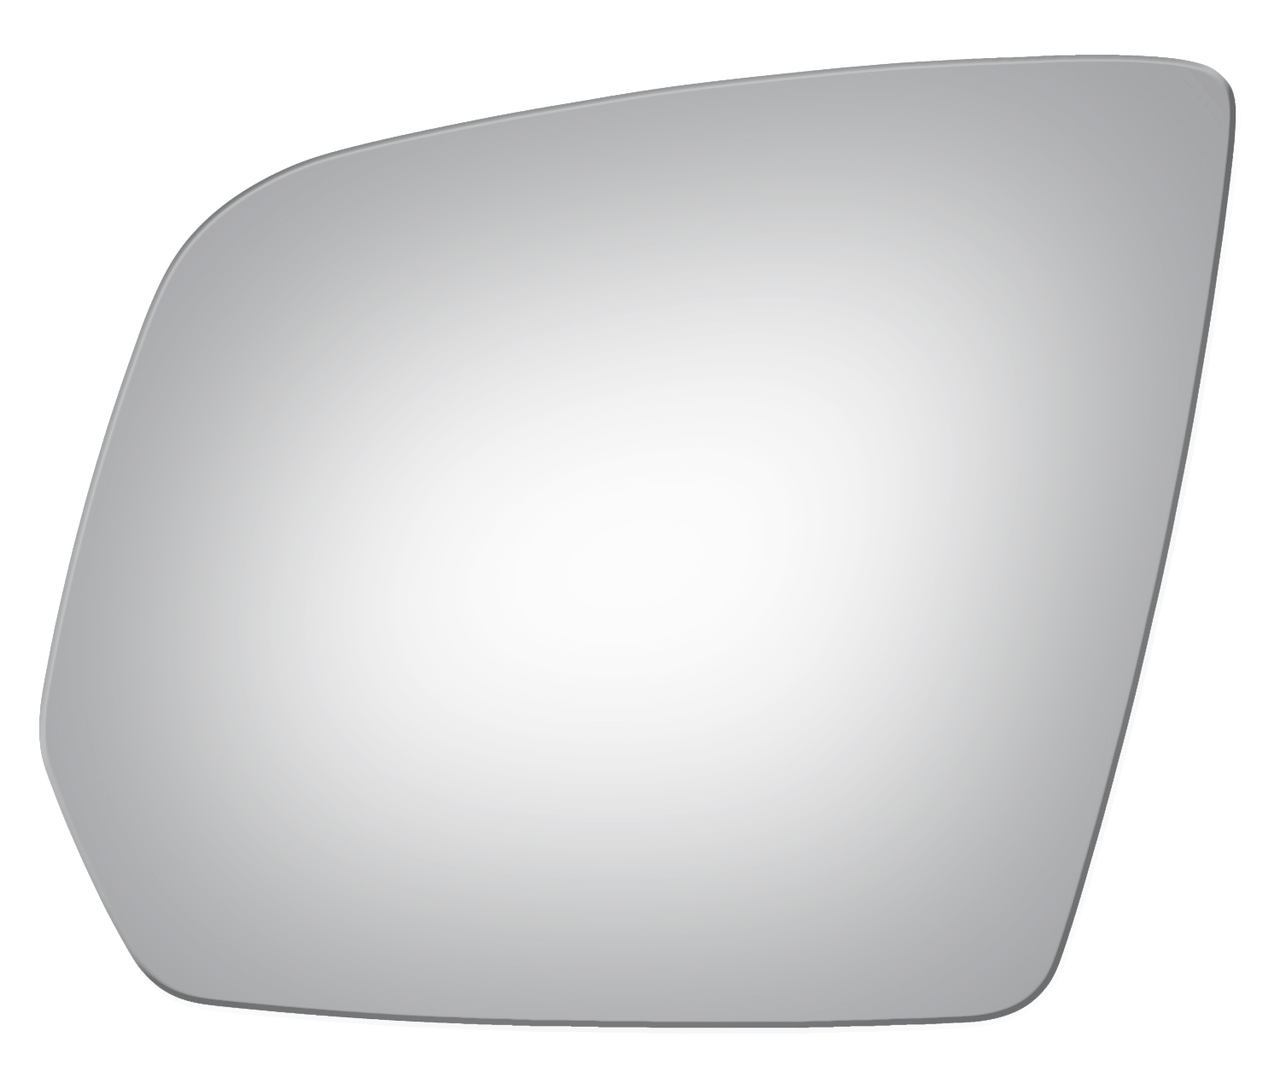 2009 mercedes benz ml550 driver side mirror 4283 for Driver side mirror replacement mercedes benz